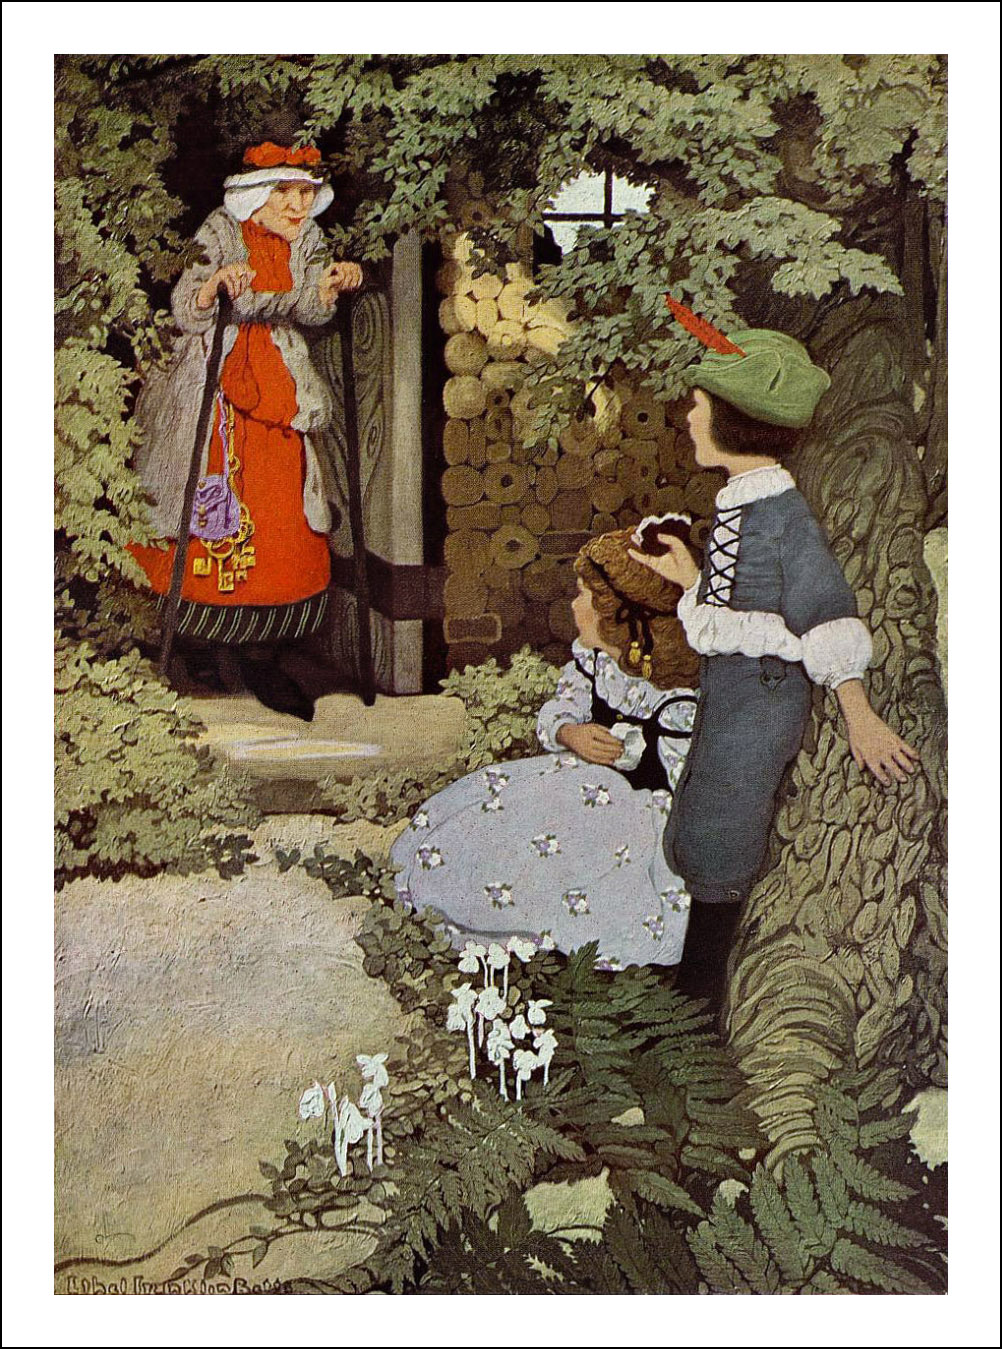 Ethel Franklin Betts, Fairy tales from Grimm